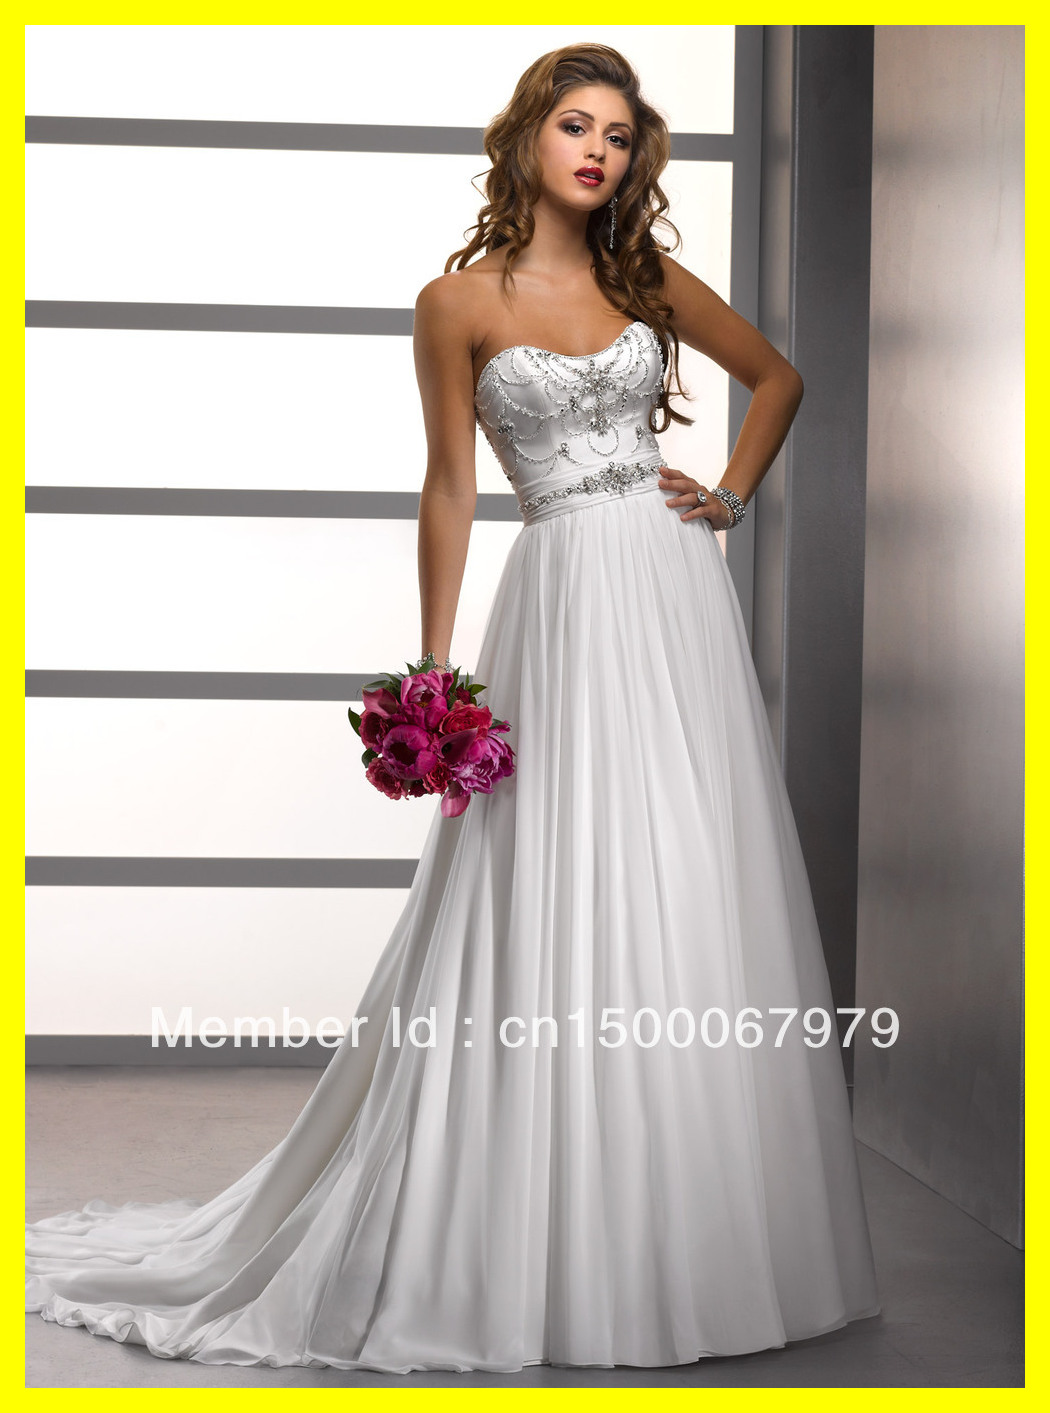 Wedding dress beach white nicole miller dresses silver red for Red and black wedding dresses for sale